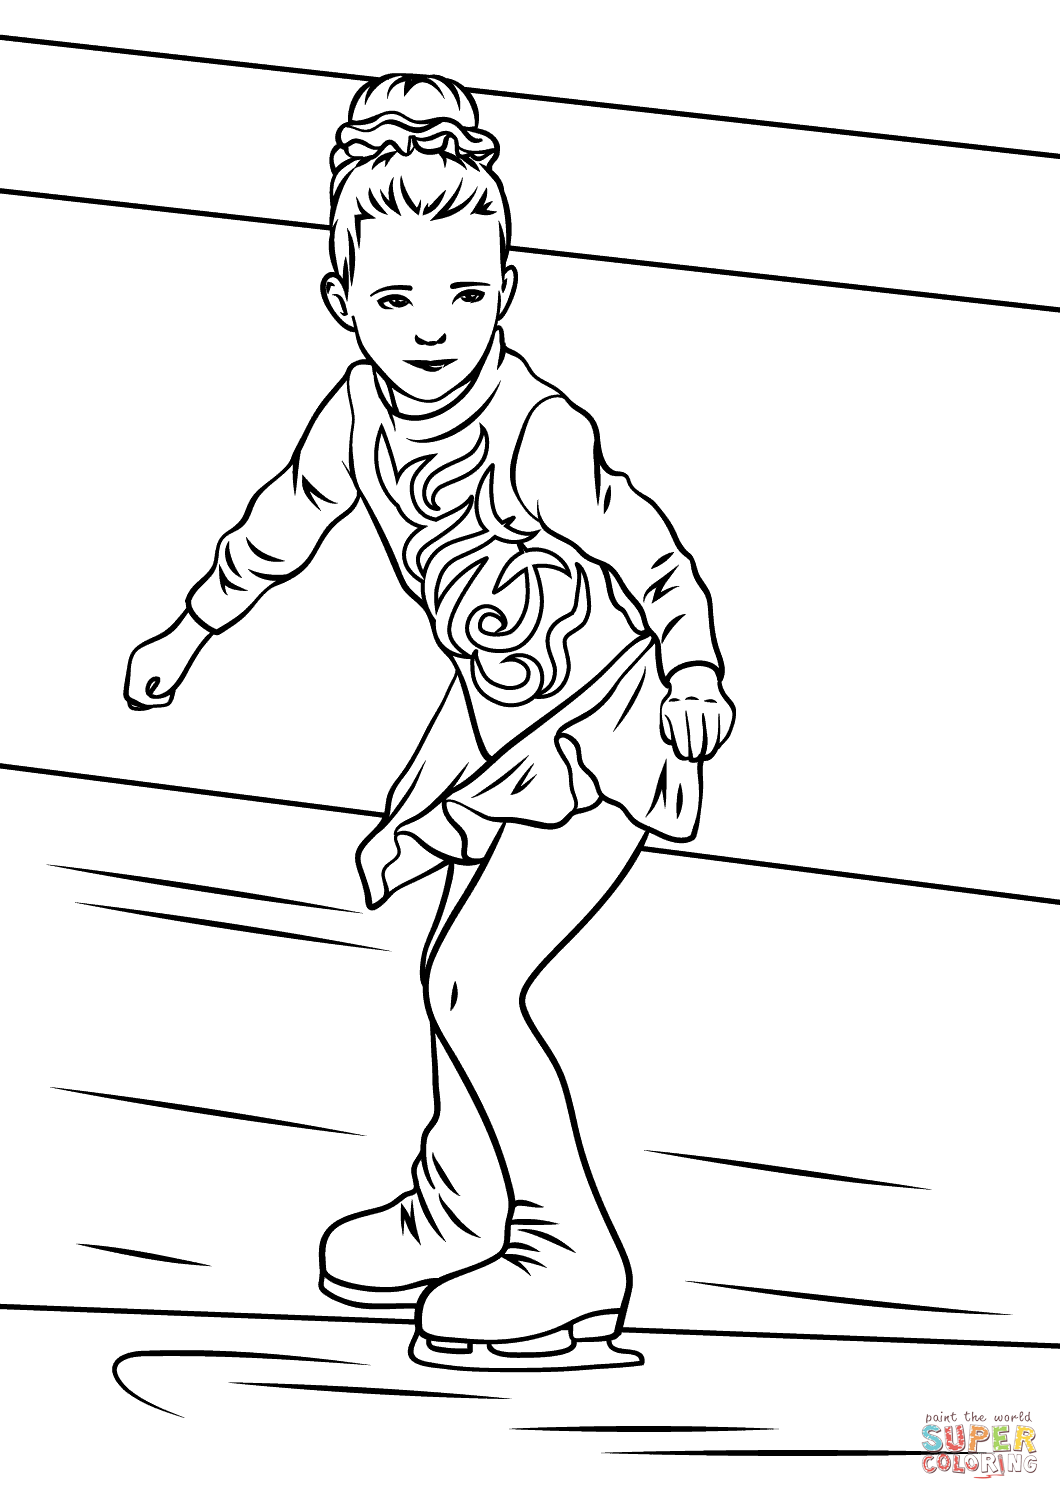 1060x1500 girl ice skater coloring page free printable coloring pages